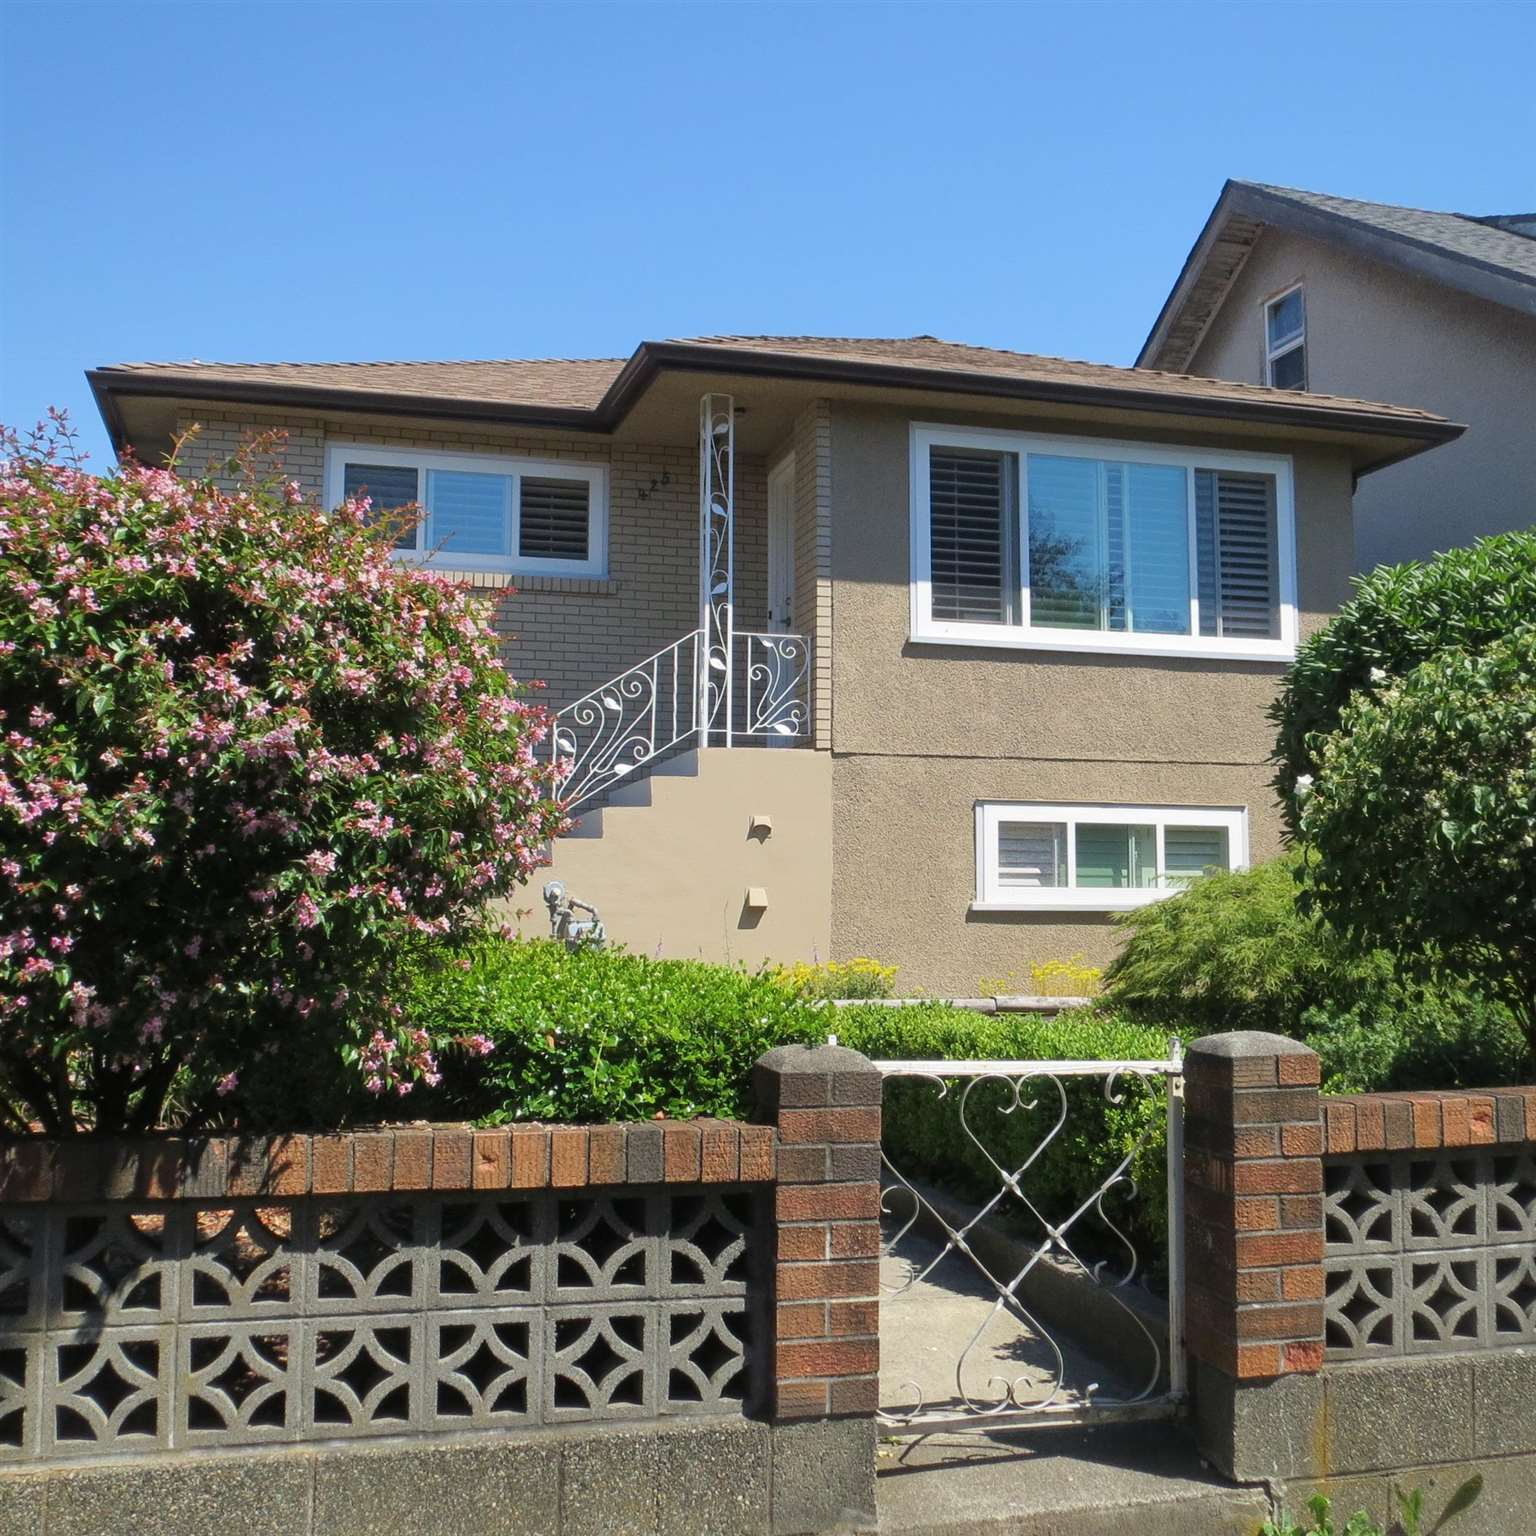 425 E 56TH AVENUE - South Vancouver House/Single Family for sale, 7 Bedrooms (R2599333) - #1